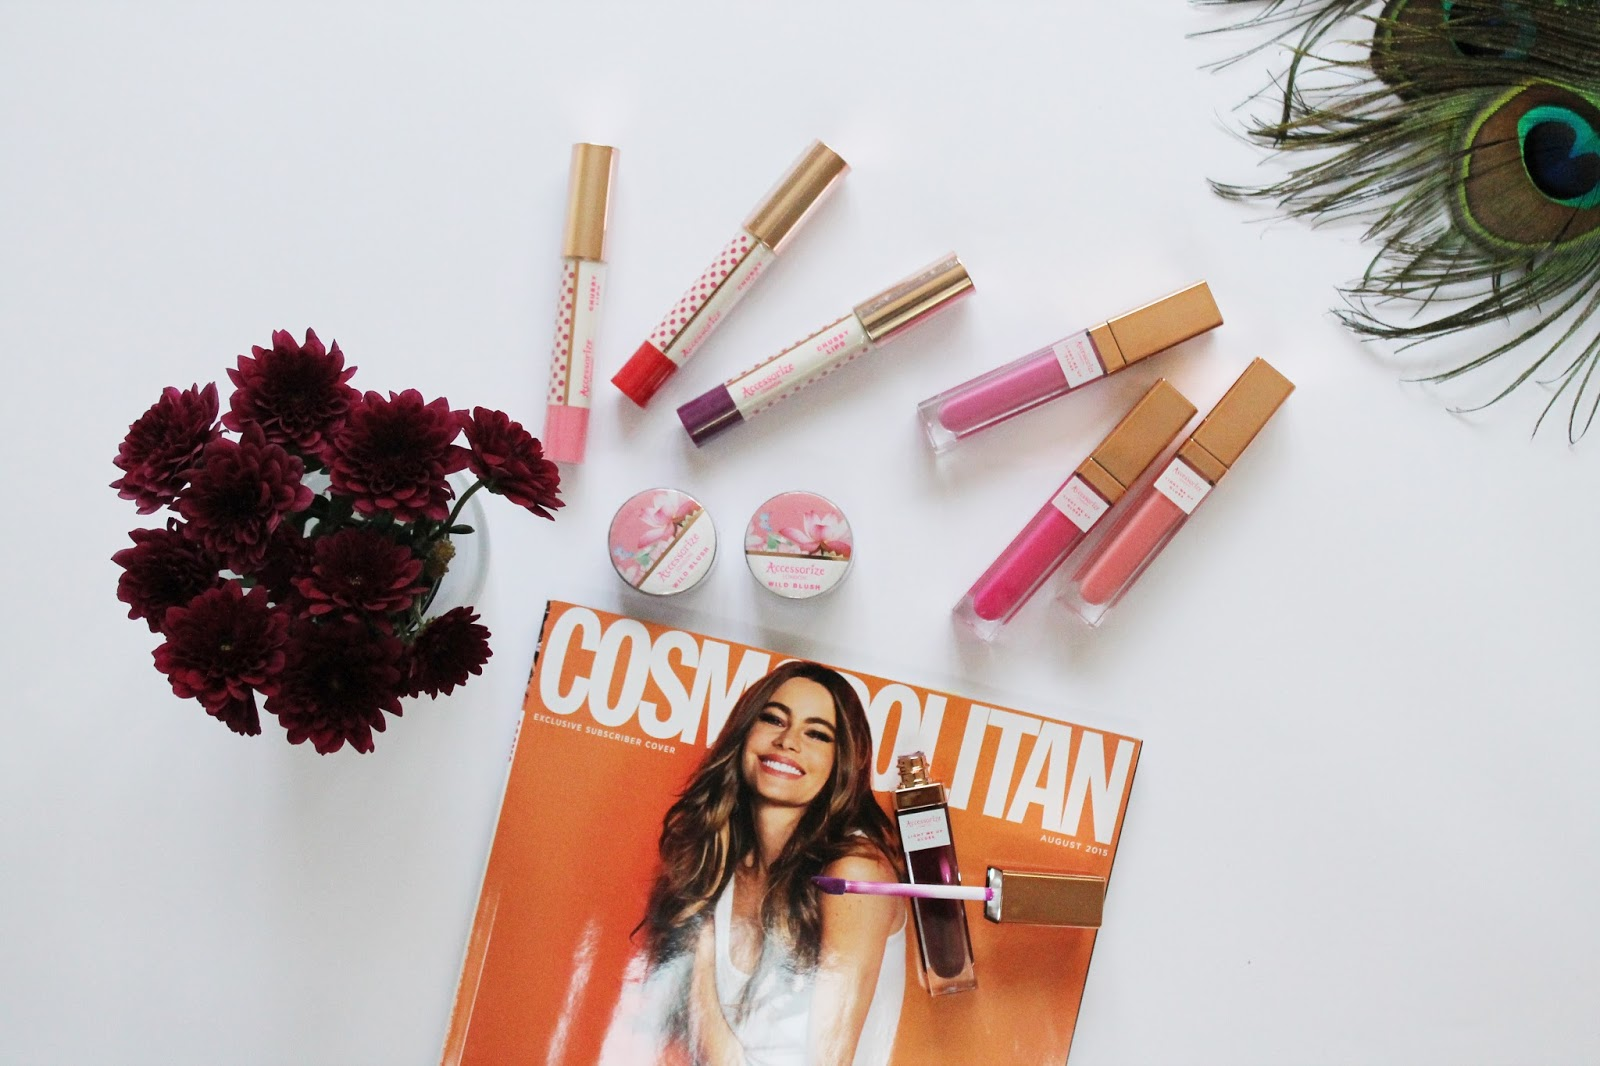 accessorize beauty, beauty, bbloggers, beauty news, lips gloss, light me up lip gloss, led light, compact, night out, cosmopolitan, flatlay, pretty, giveaway